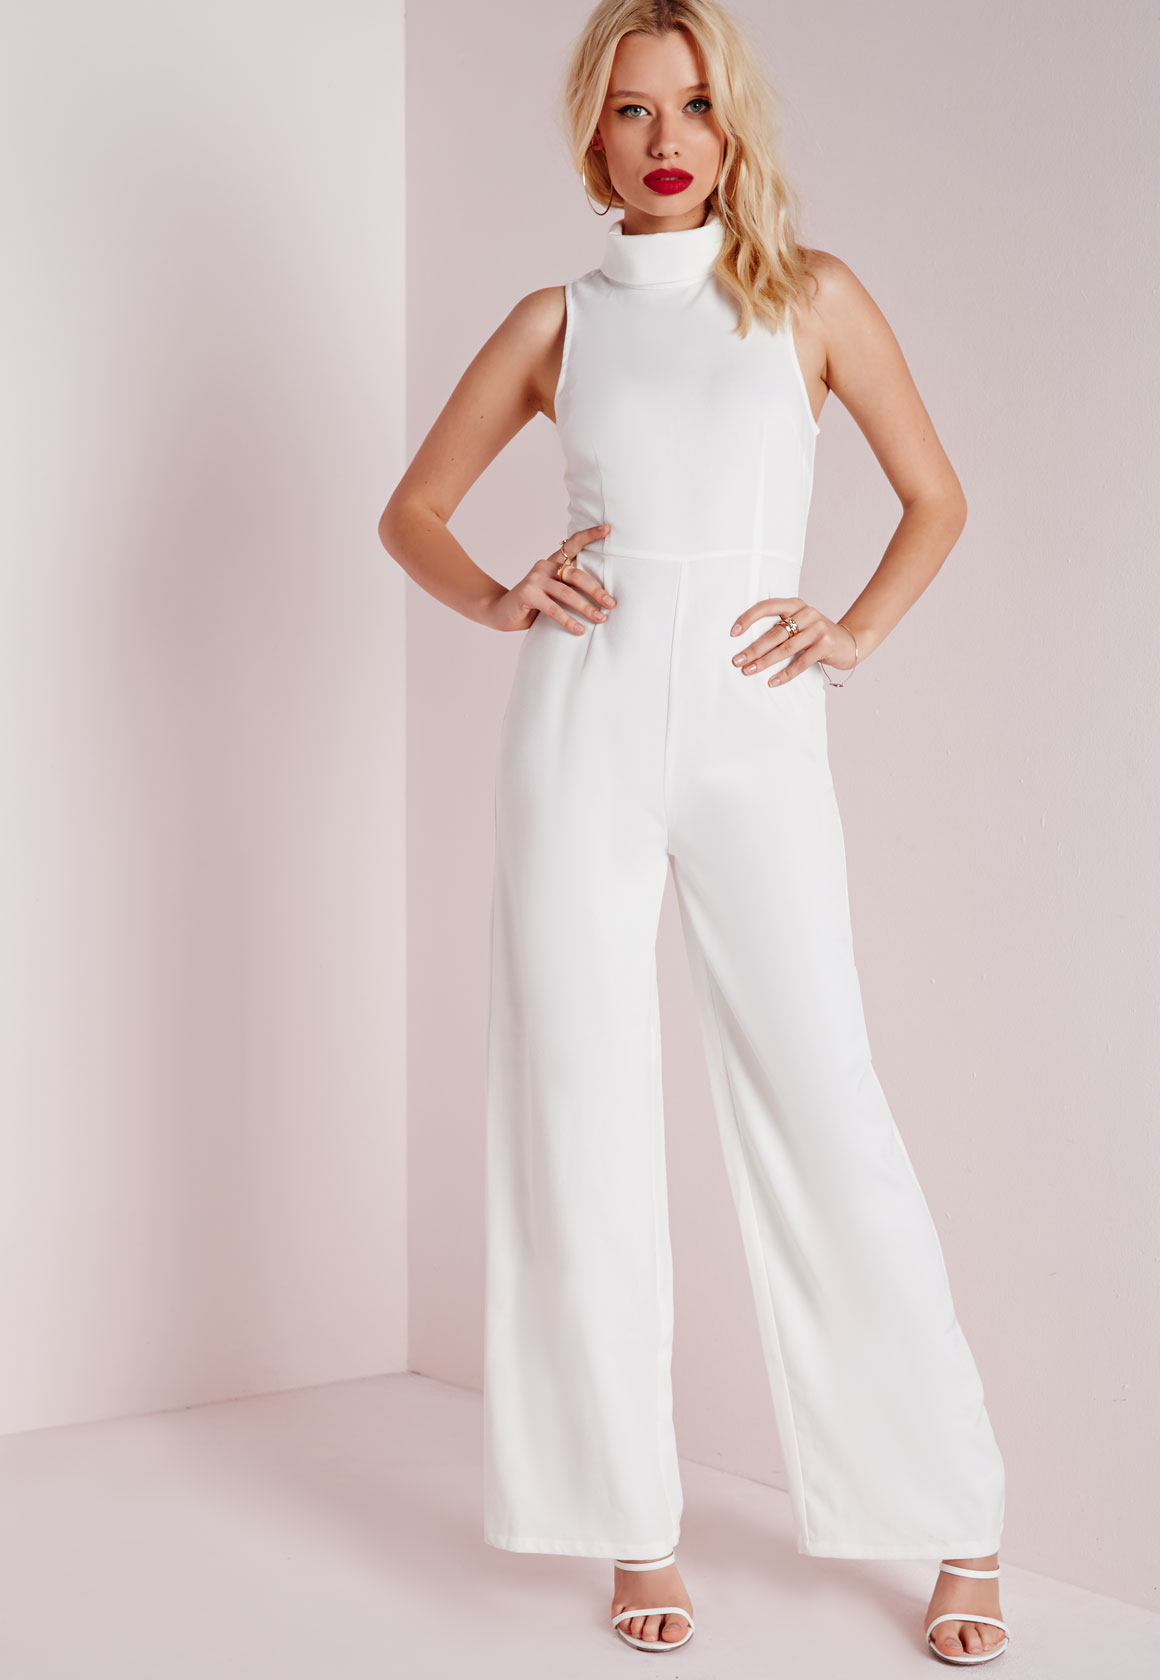 63f03cc62c6 Lyst - Missguided High Neck Wide Leg Jumpsuit White in White